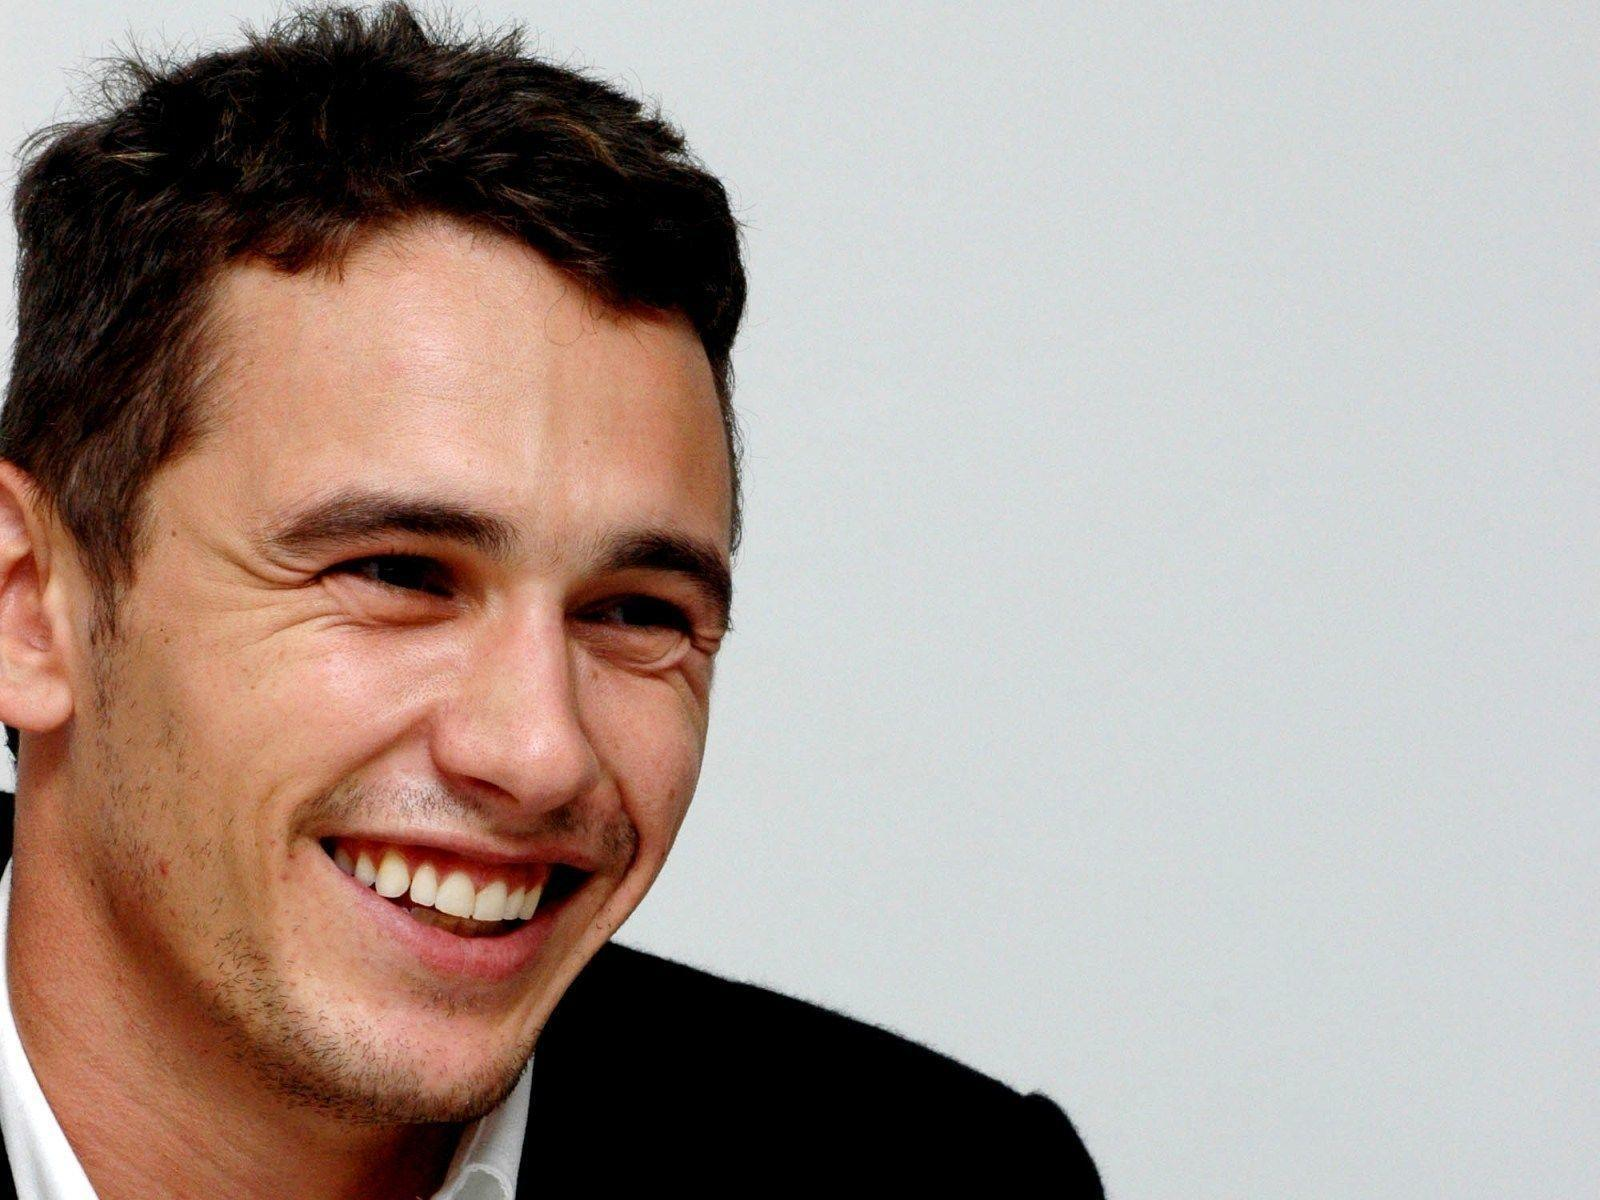 James Franco Wallpapers Hd 1671 Image